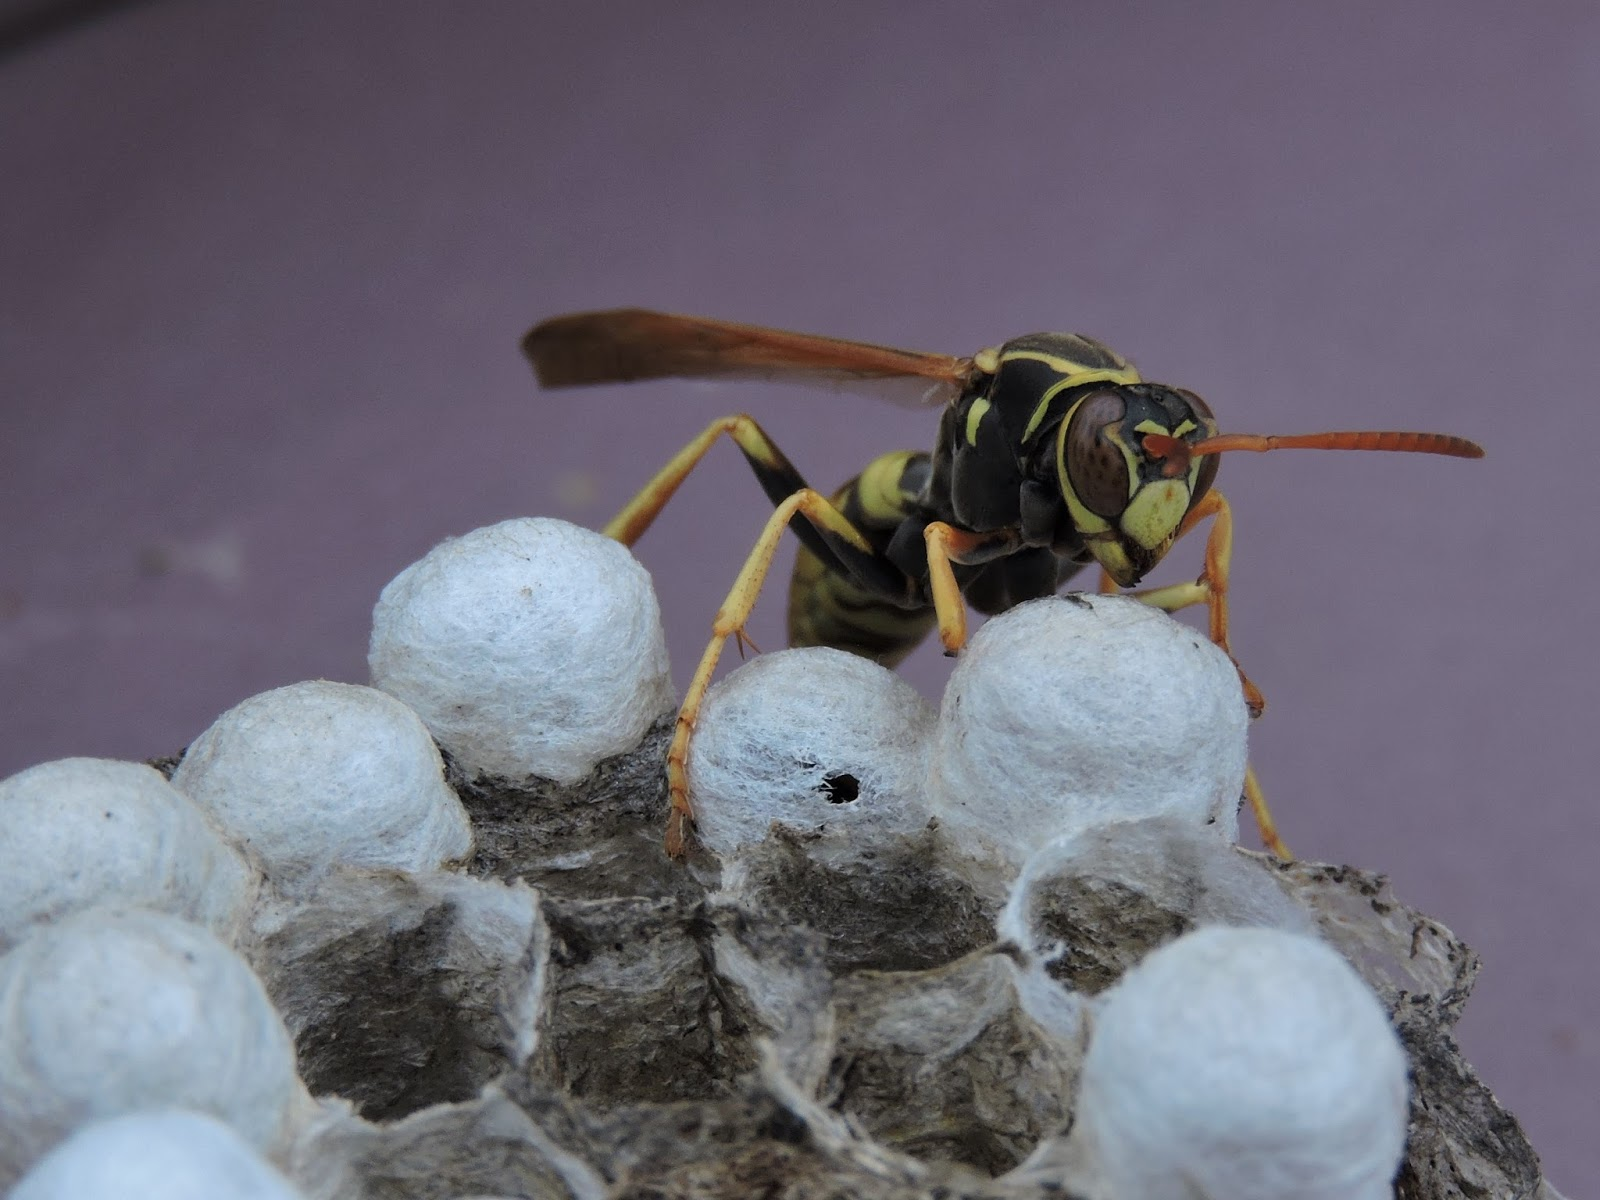 polistes aurifer a docile paper wasp which forms small nests [ 1600 x 1200 Pixel ]